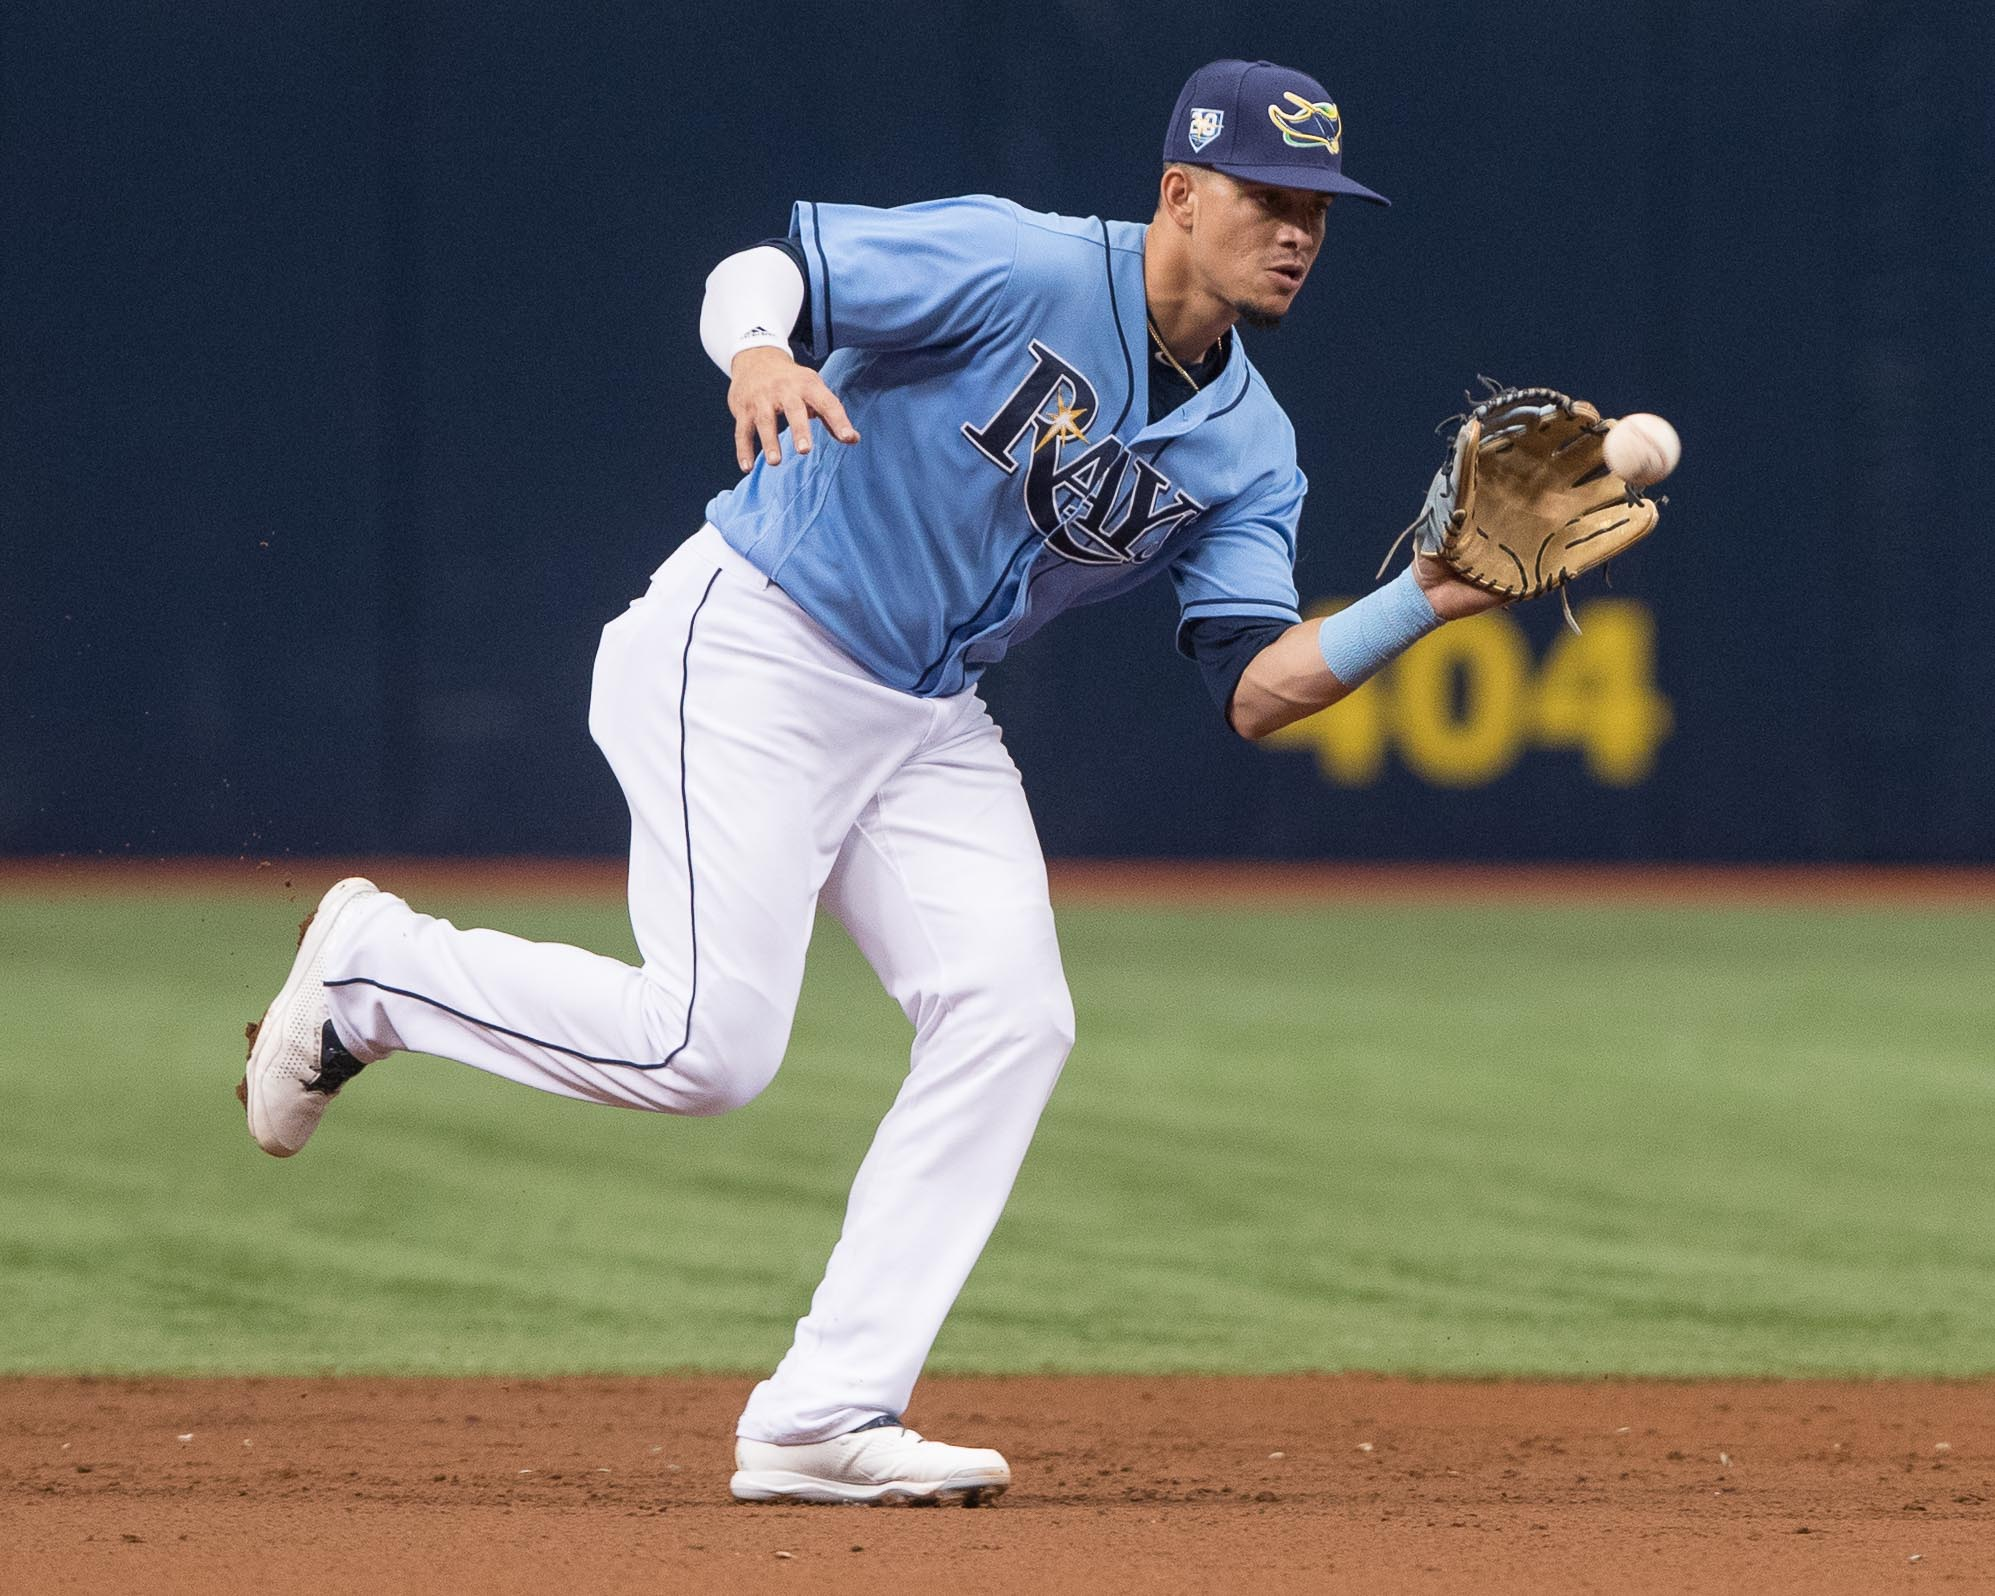 Gomez makes a catch for the Rays./STEVEN MUNCIE